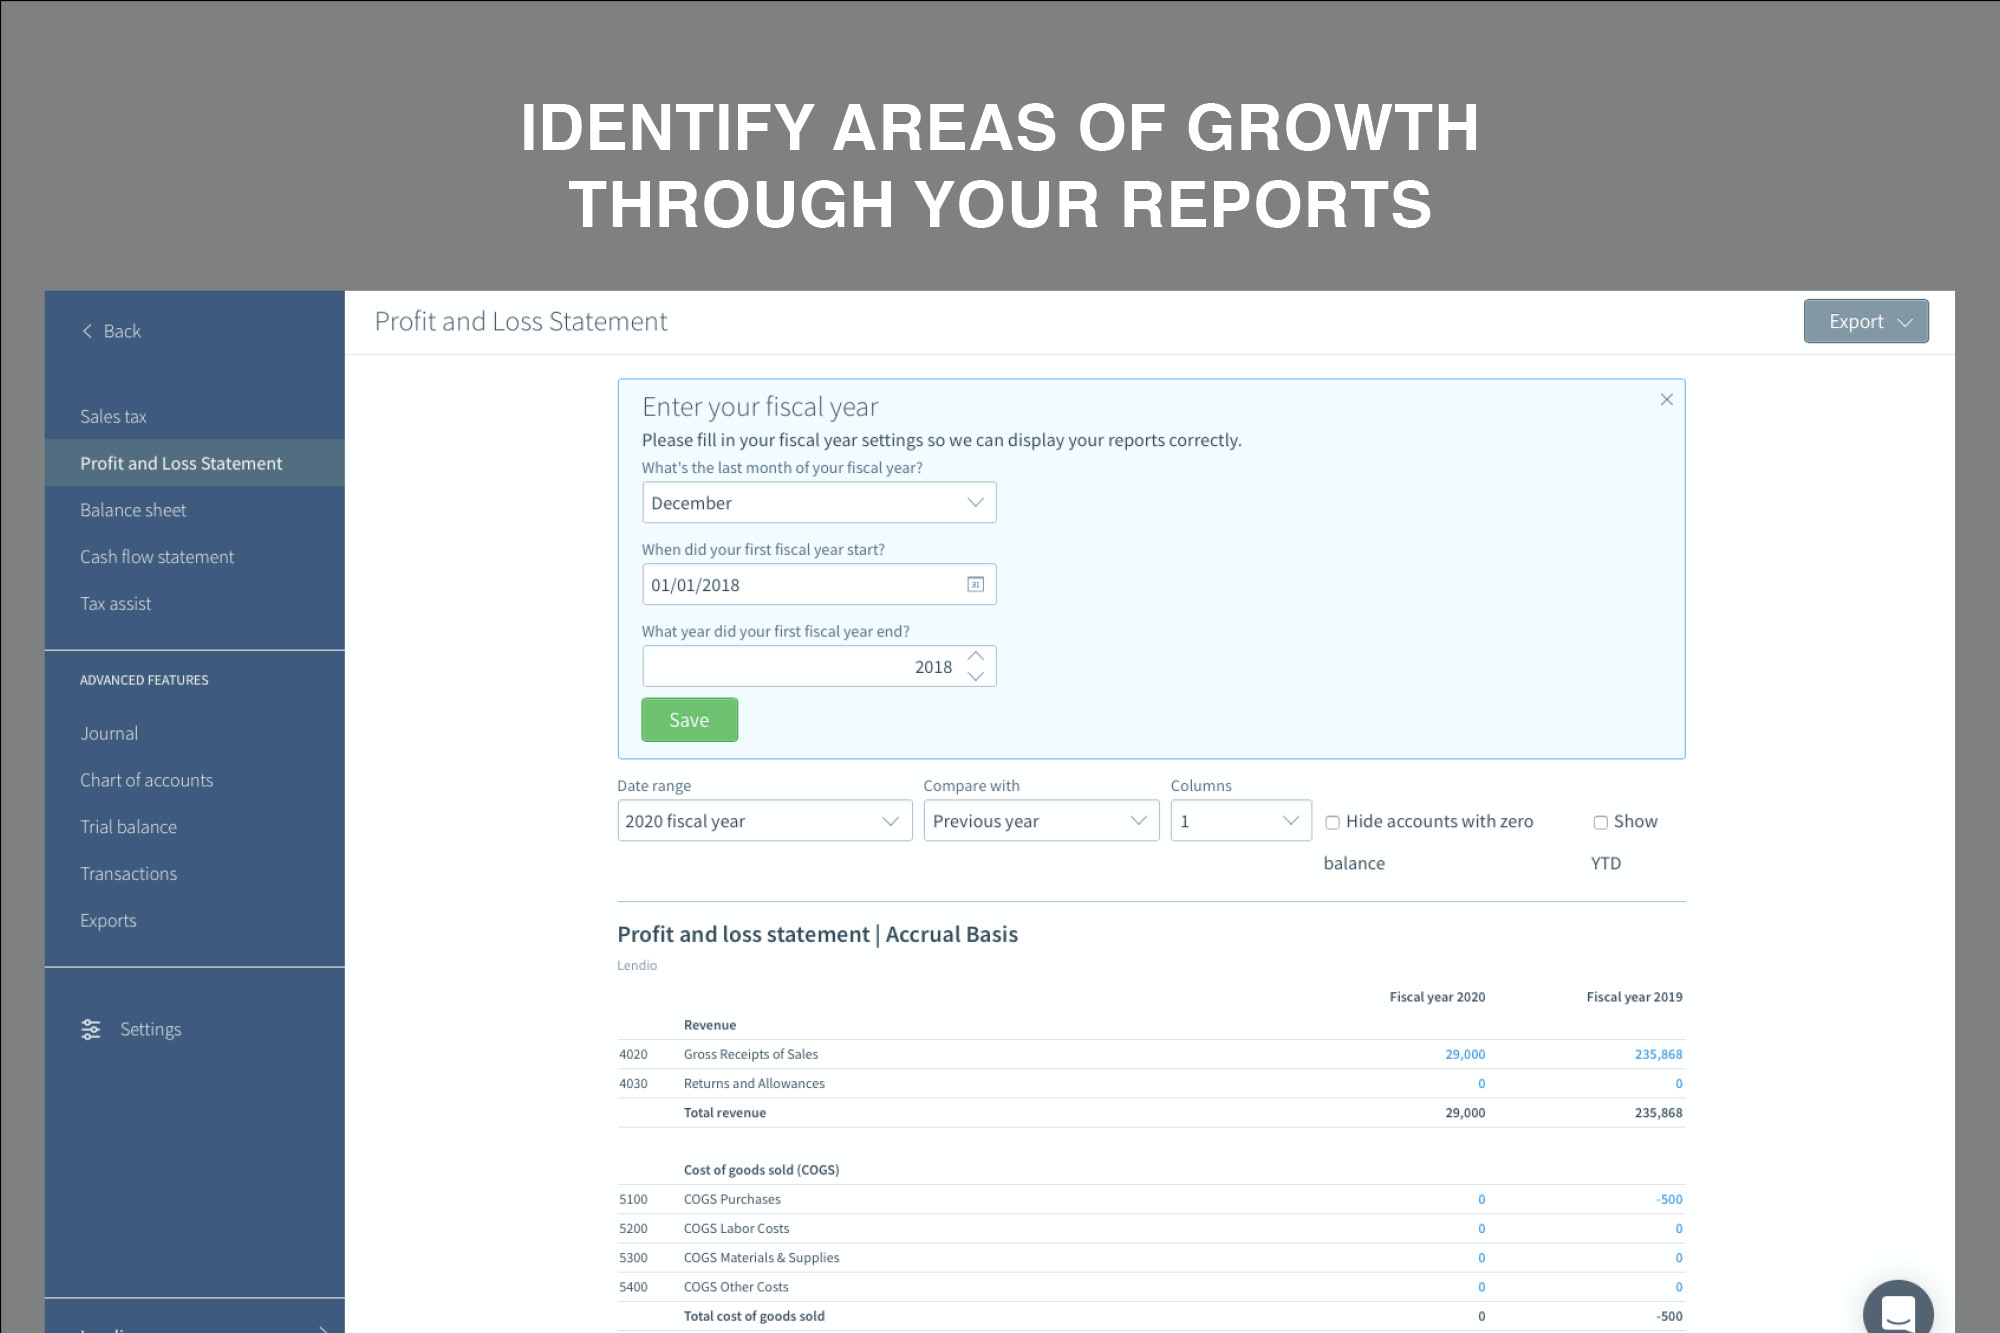 Identify areas of growth through your reports.